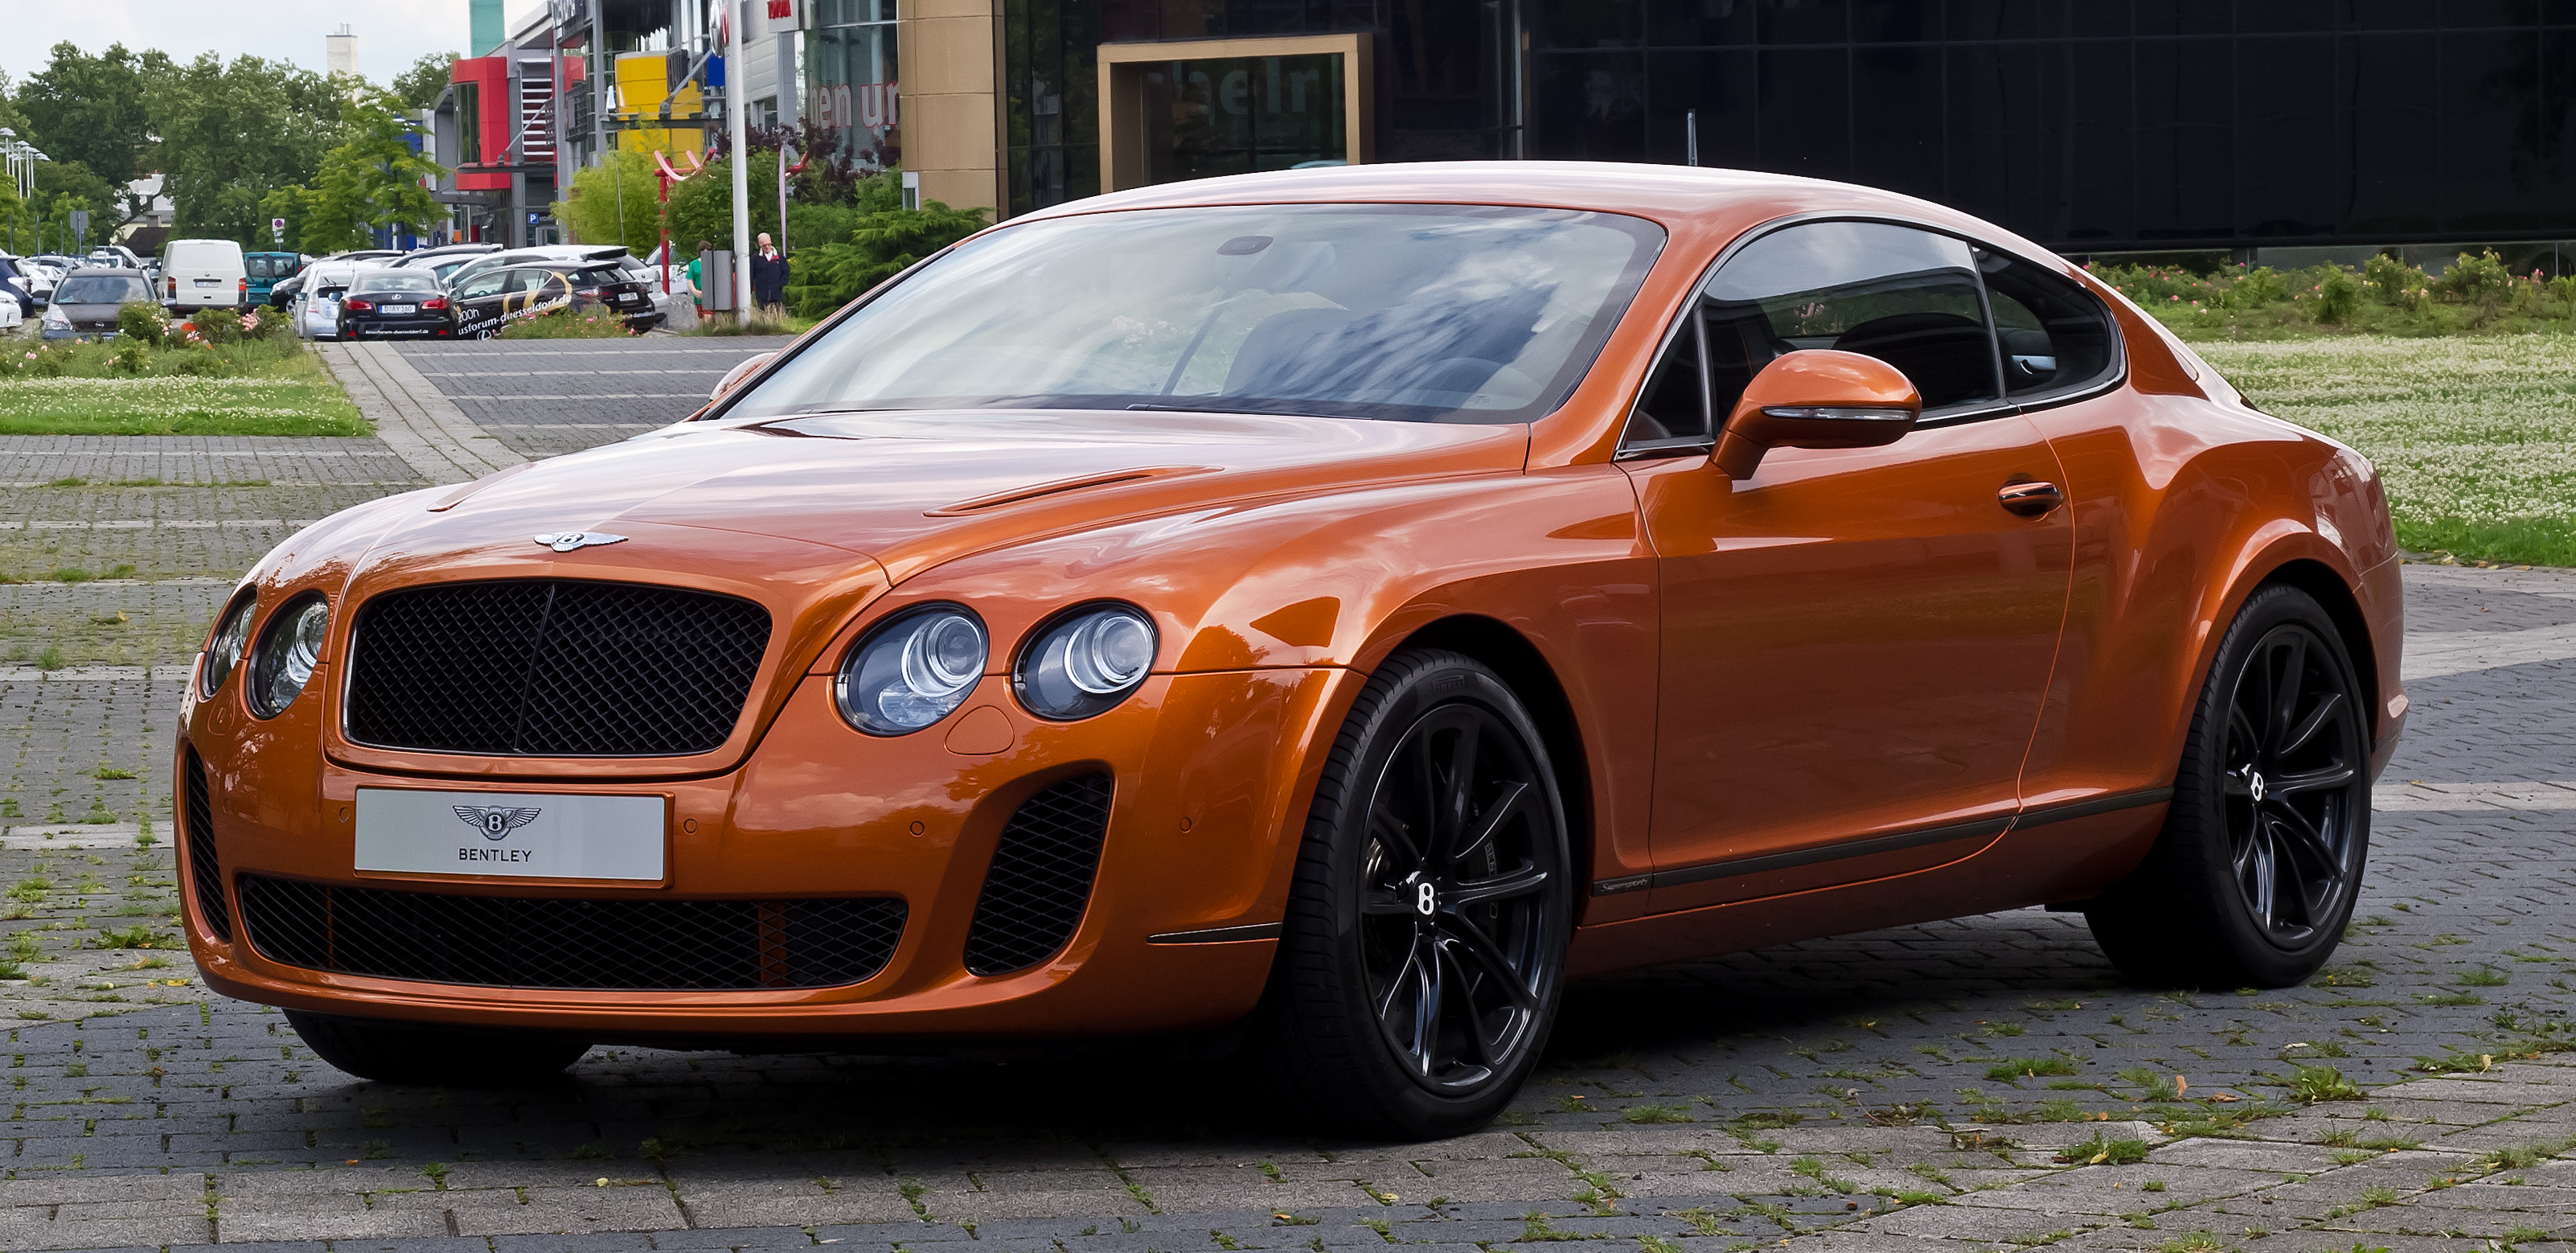 File:Bentley Continental Supersports U2013 Frontansicht (2), 18. Juli 2012,